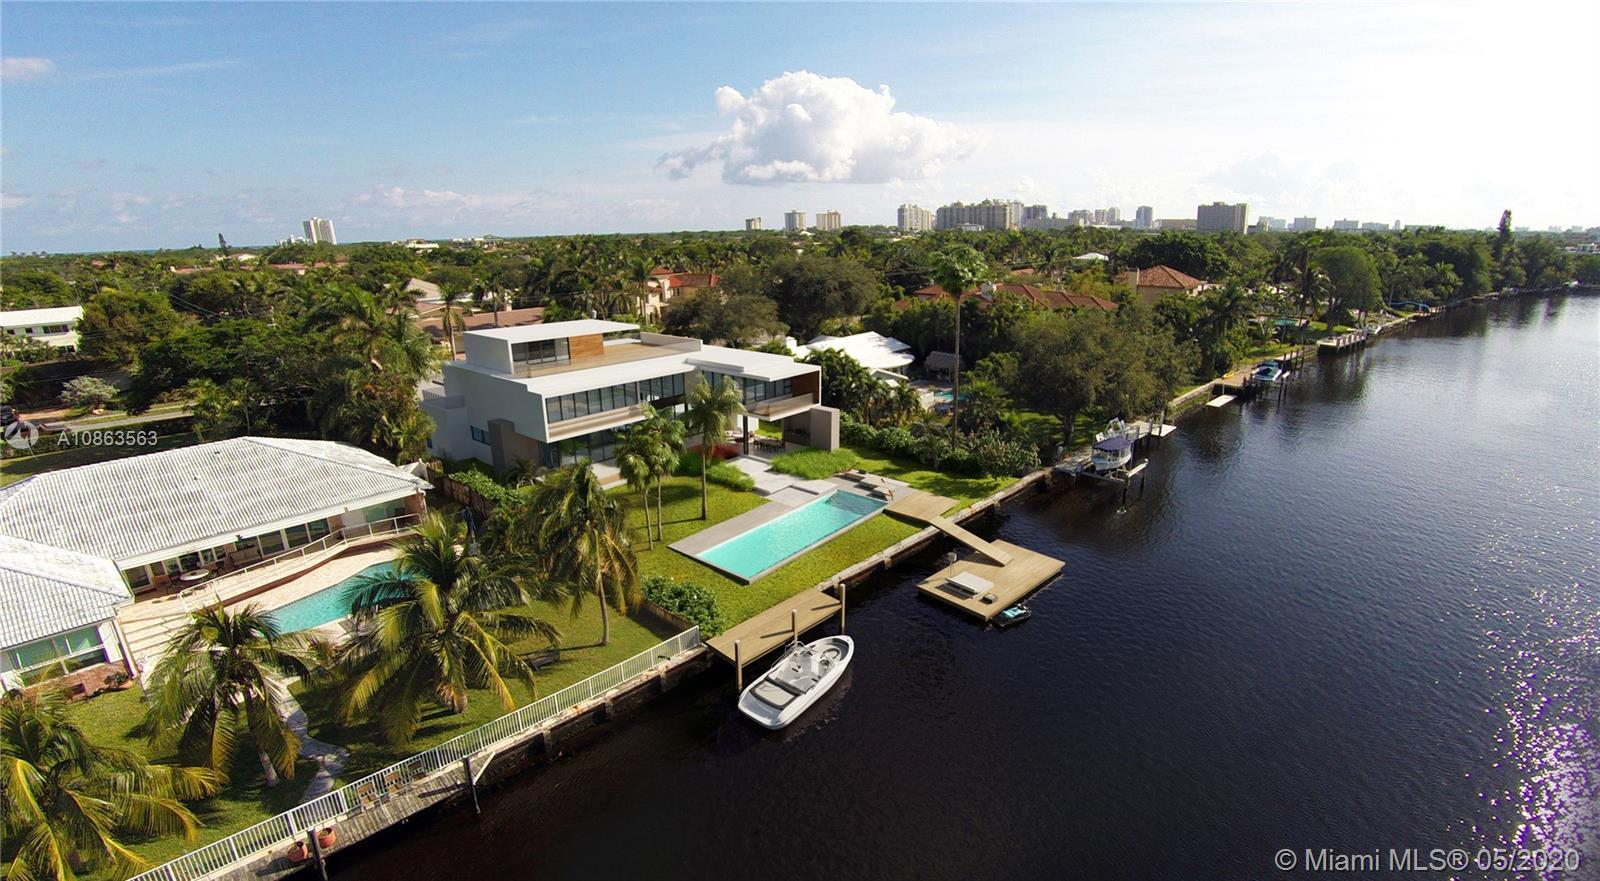 Unique, stunning, modern estate. 100 ft water frontage with panoramic views and dock. Infinity pool